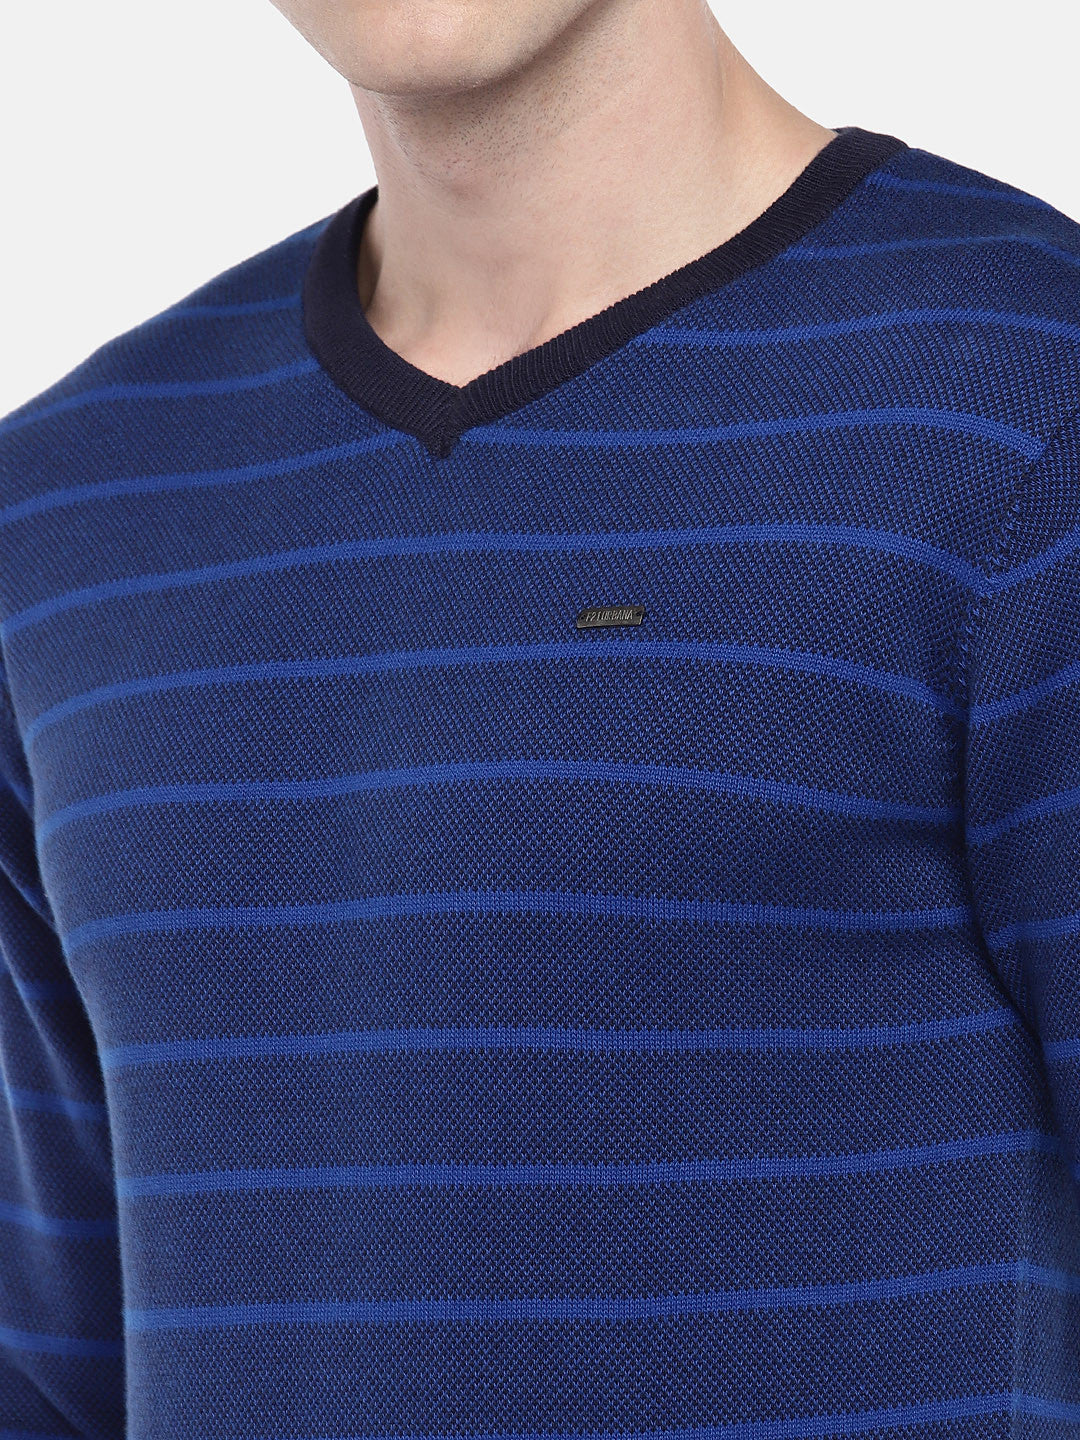 Blue Striped Pullover Sweater-5